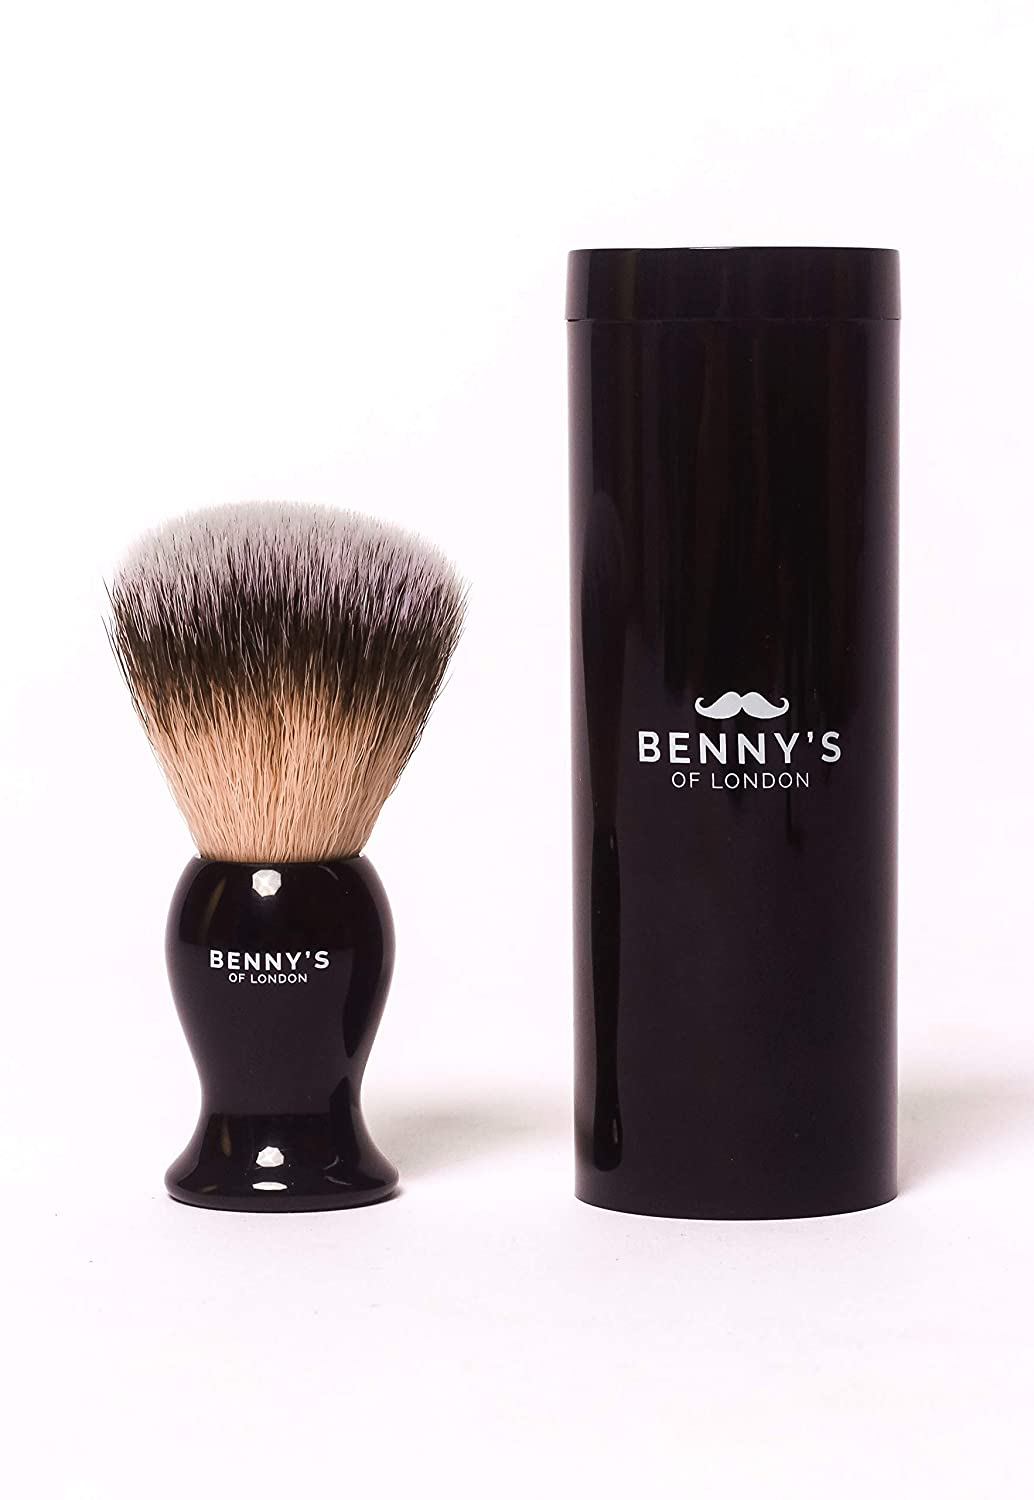 Mini Travel Shaving Brush with Travel CASE - Benny's of London - Men's Gift Idea - Luxury Travel Shave Brush - with Hard Travel Case - Must Have Present for Men's Grooming Set JDK